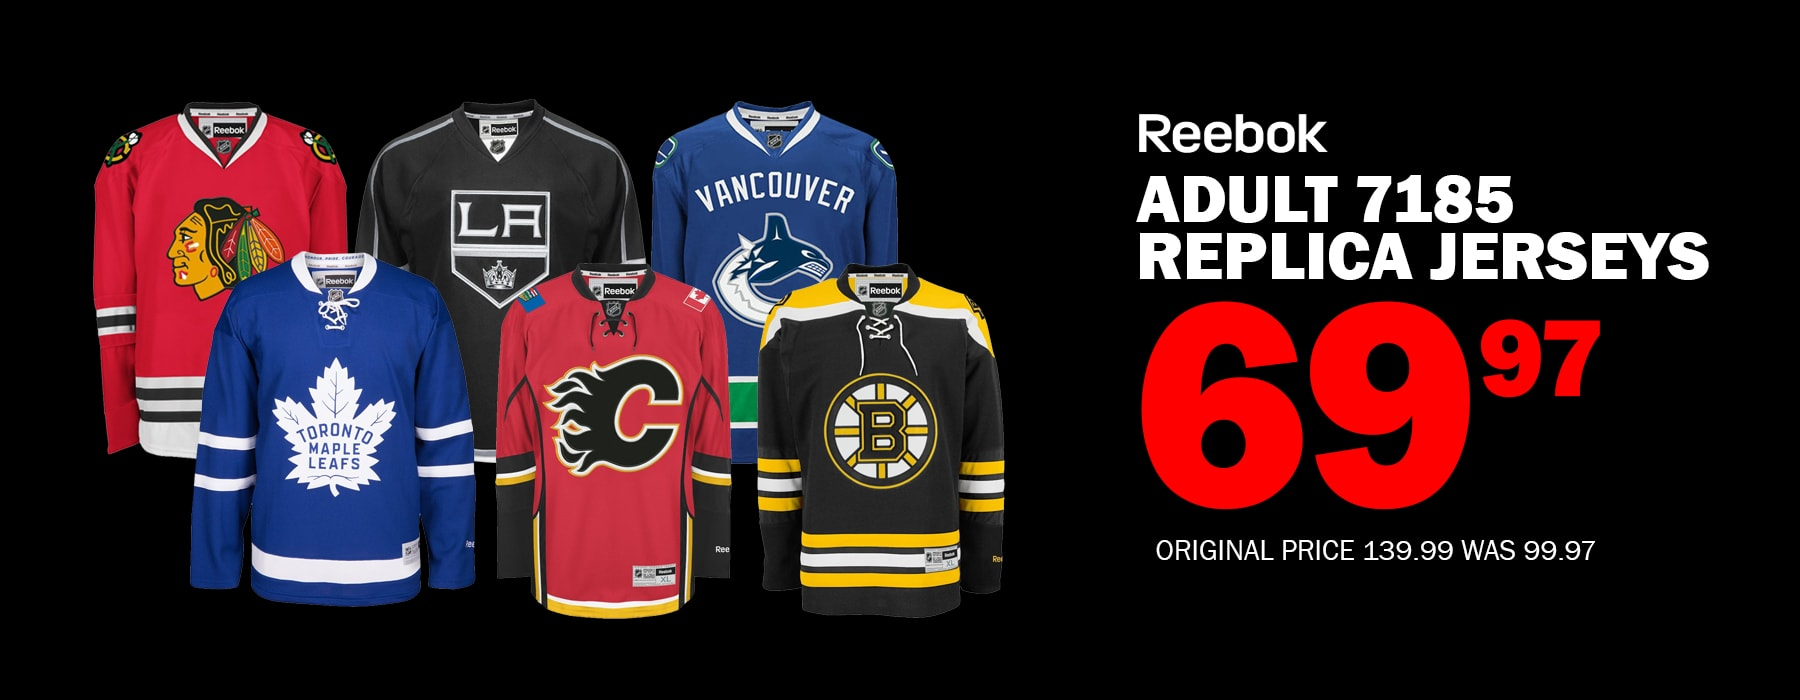 Reebok 7185 Replica Jerseys